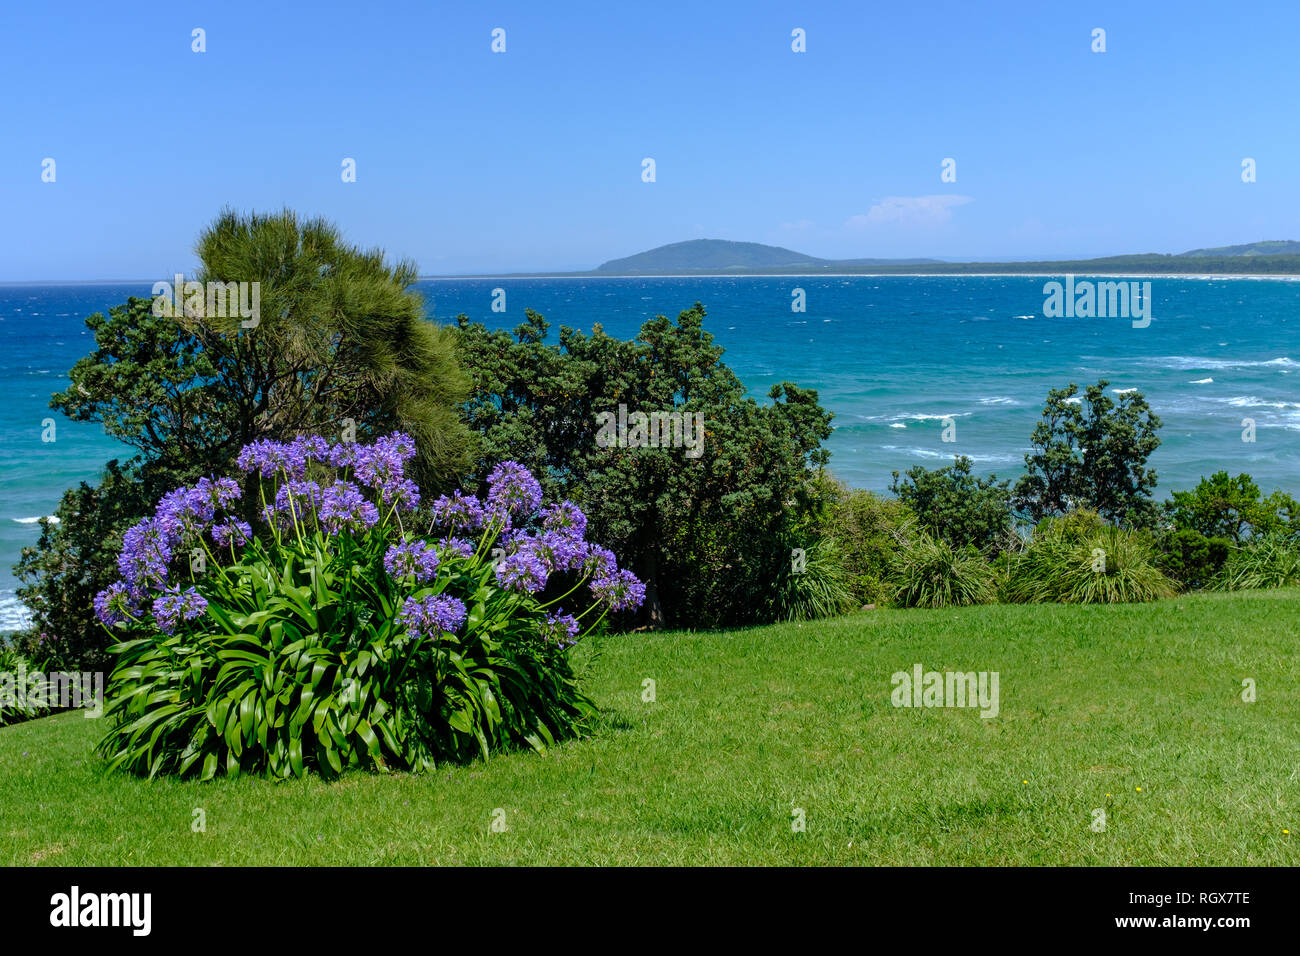 A blue flower Agapanthus (Lily of the Nile) plant blooming on the coast of NSW, Australia, this is a non native species that has become a naturalised  - Stock Image